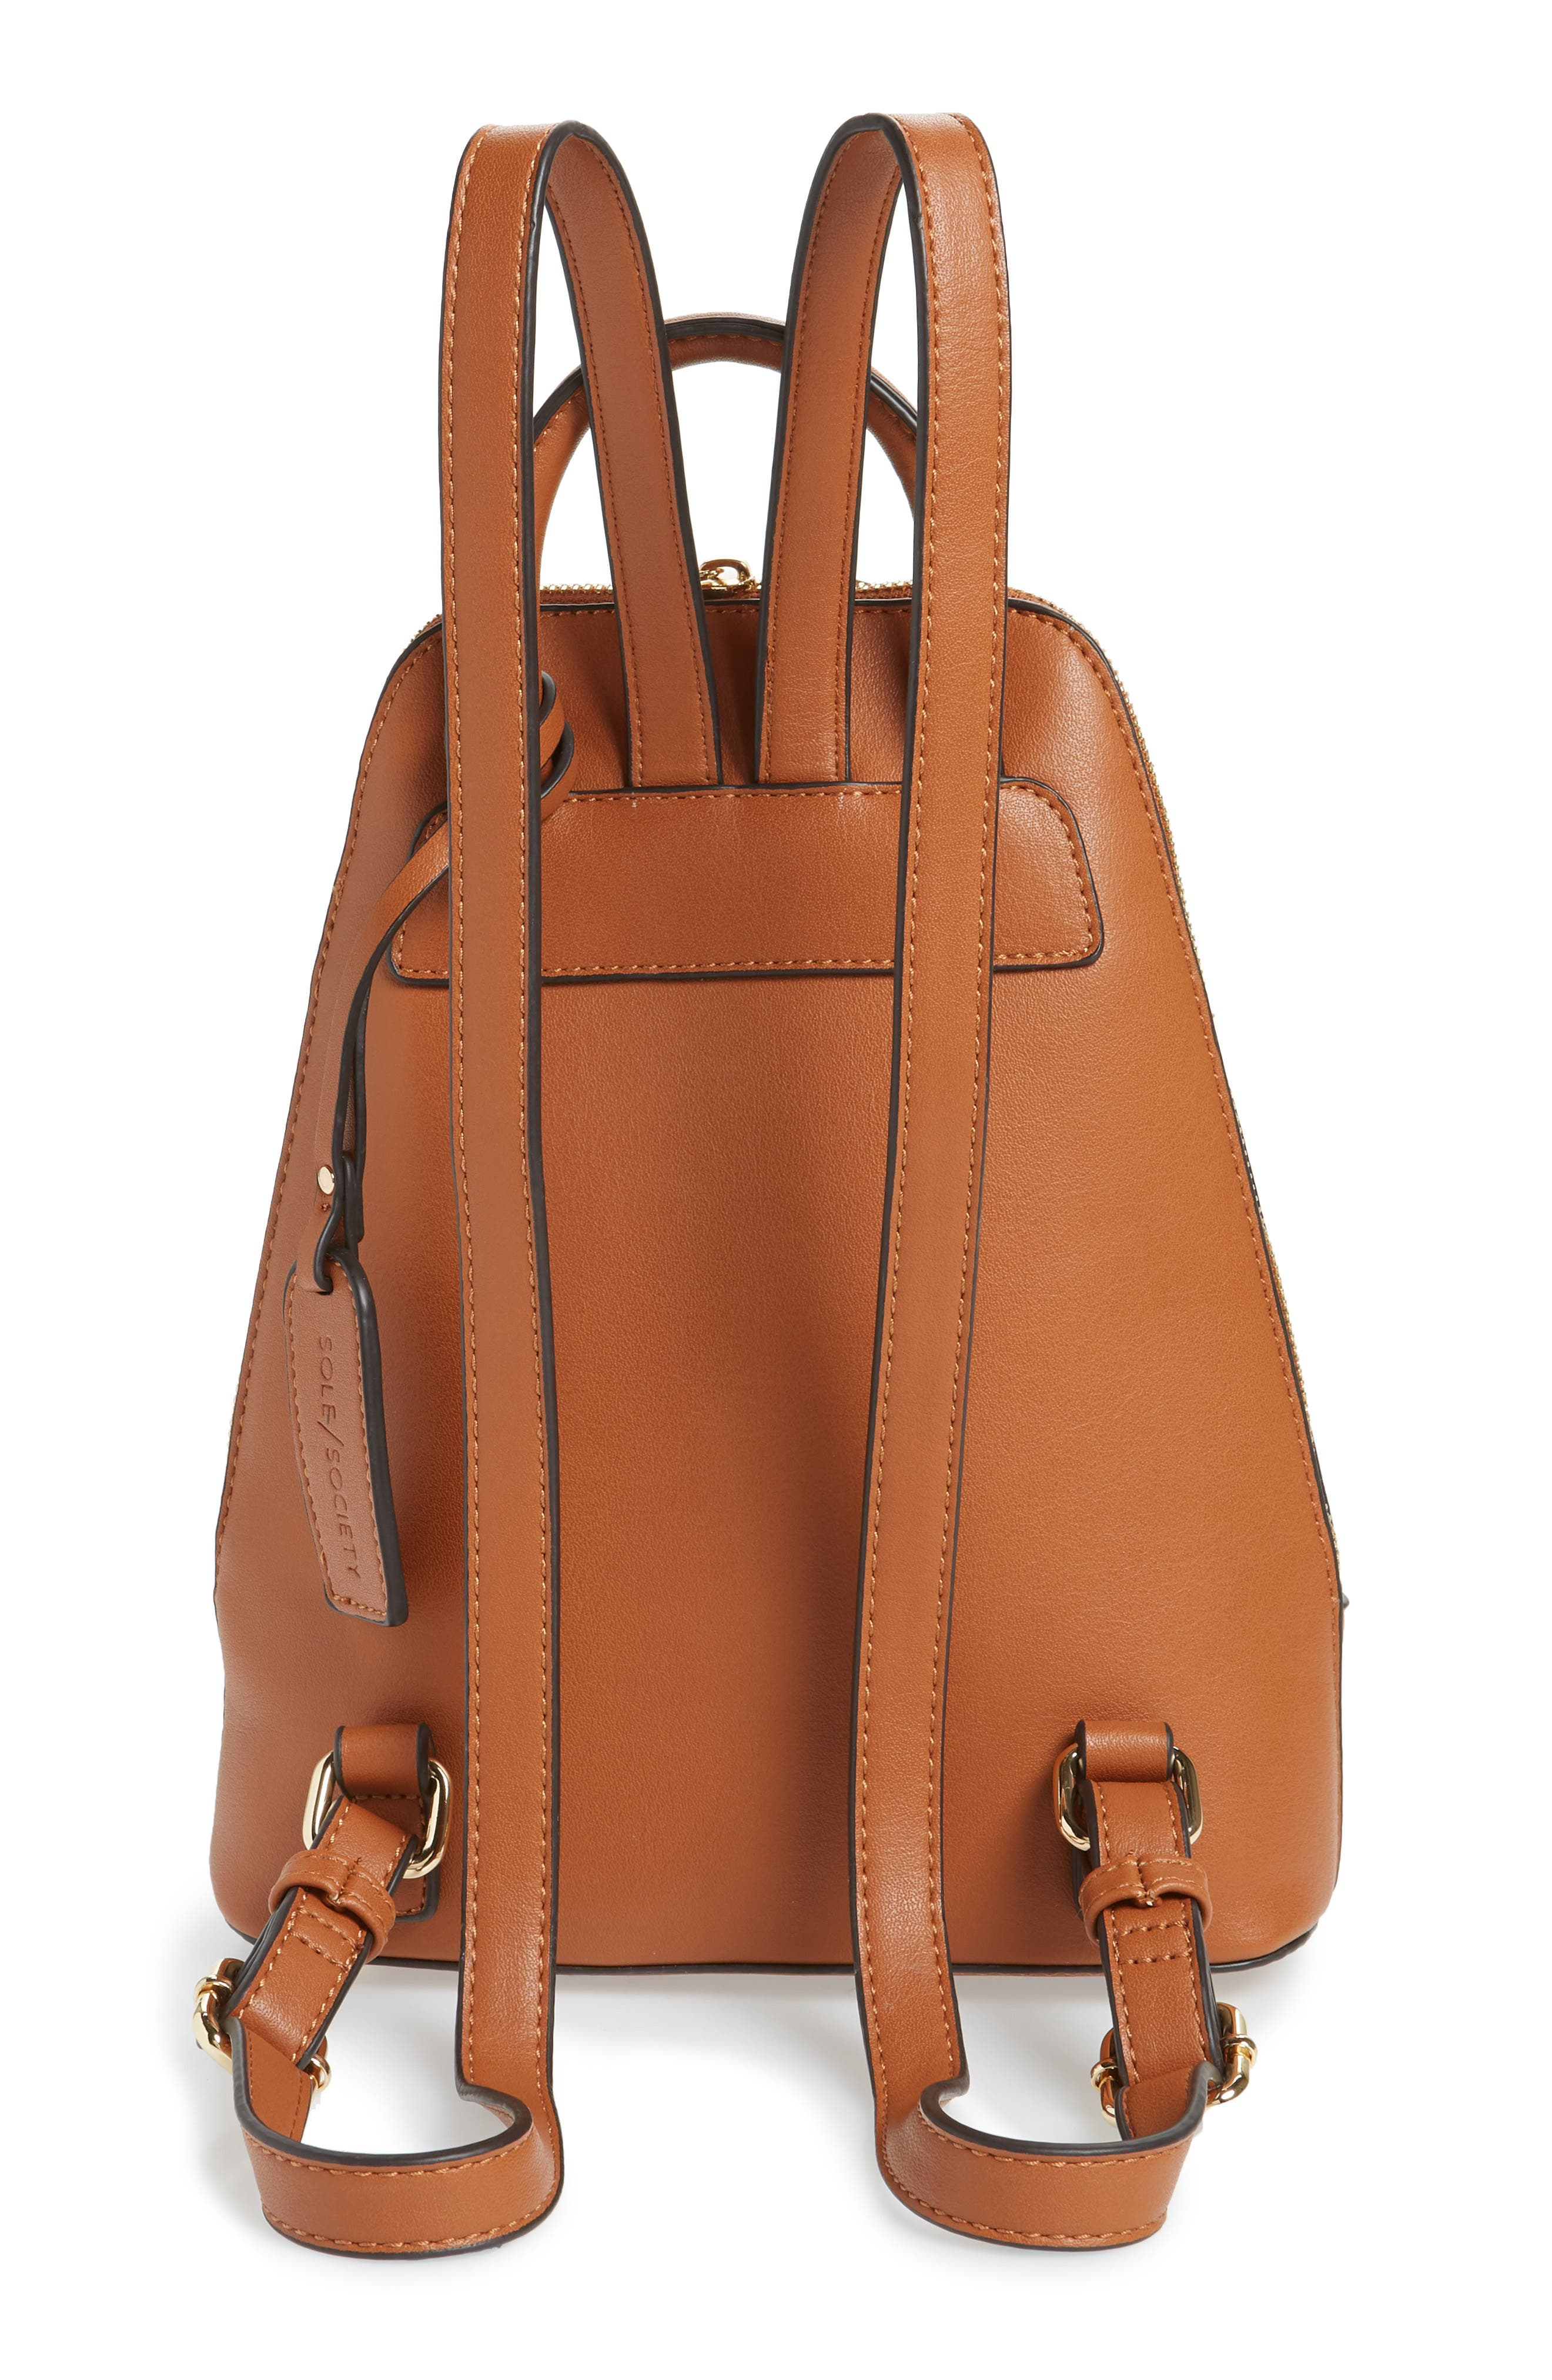 SOLE SOCIETY, Aushan Faux Leather Backpack, Alternate thumbnail 4, color, COGNAC